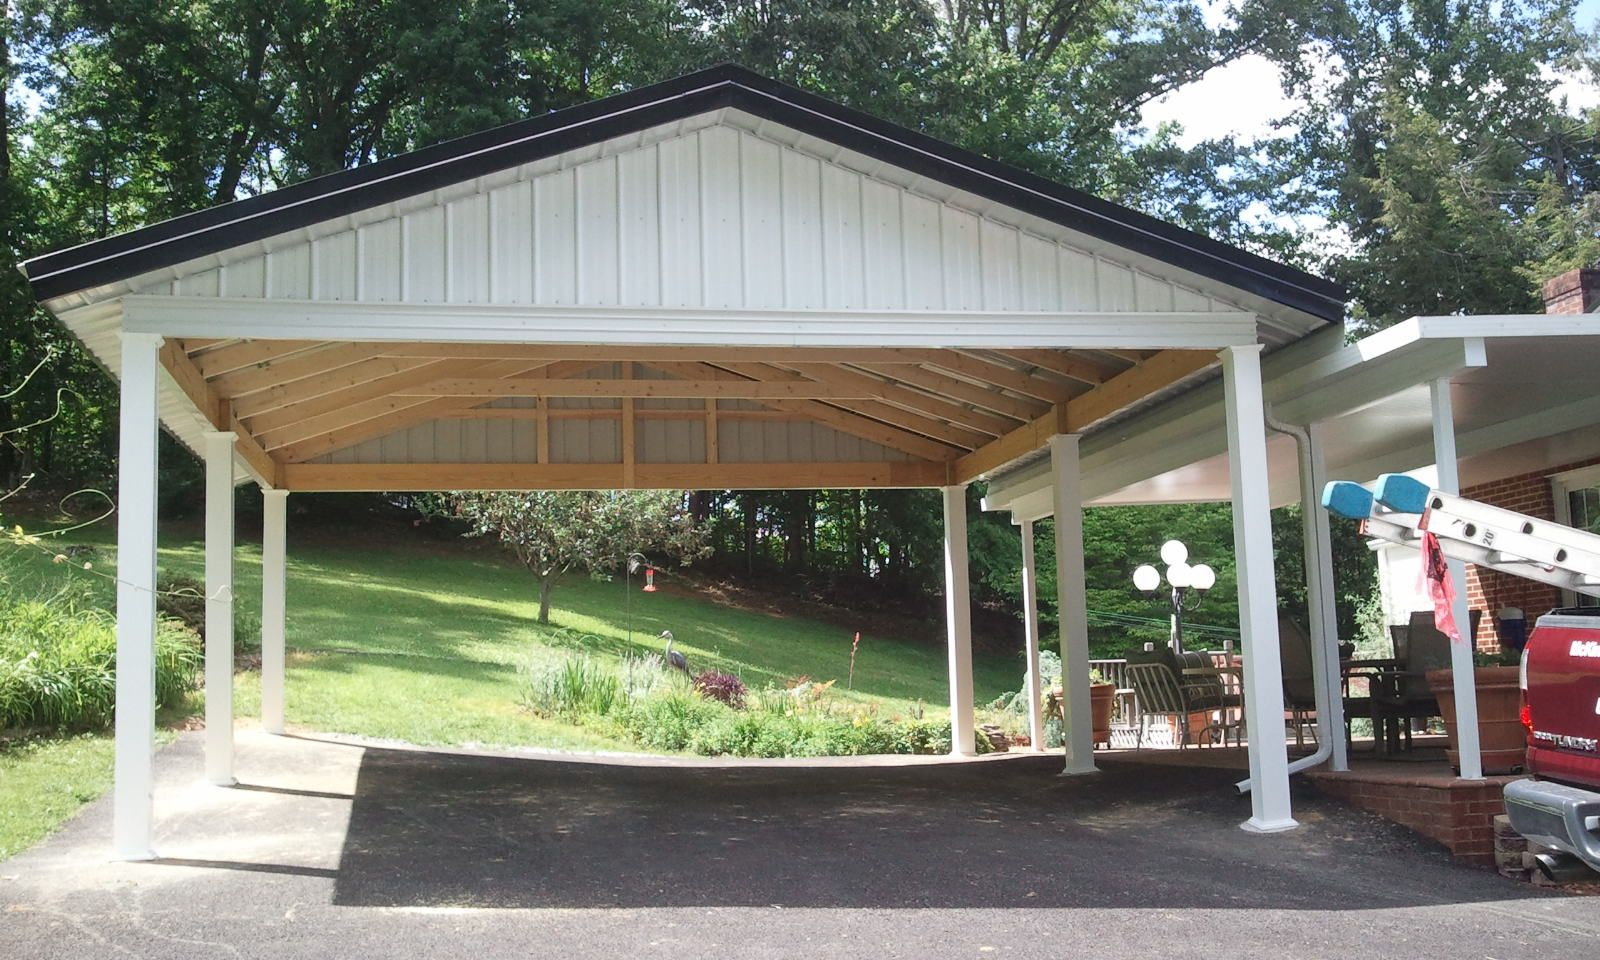 Wood Carport Ideas Mckinney Home Improvement Hd Wood: wood carport plans free